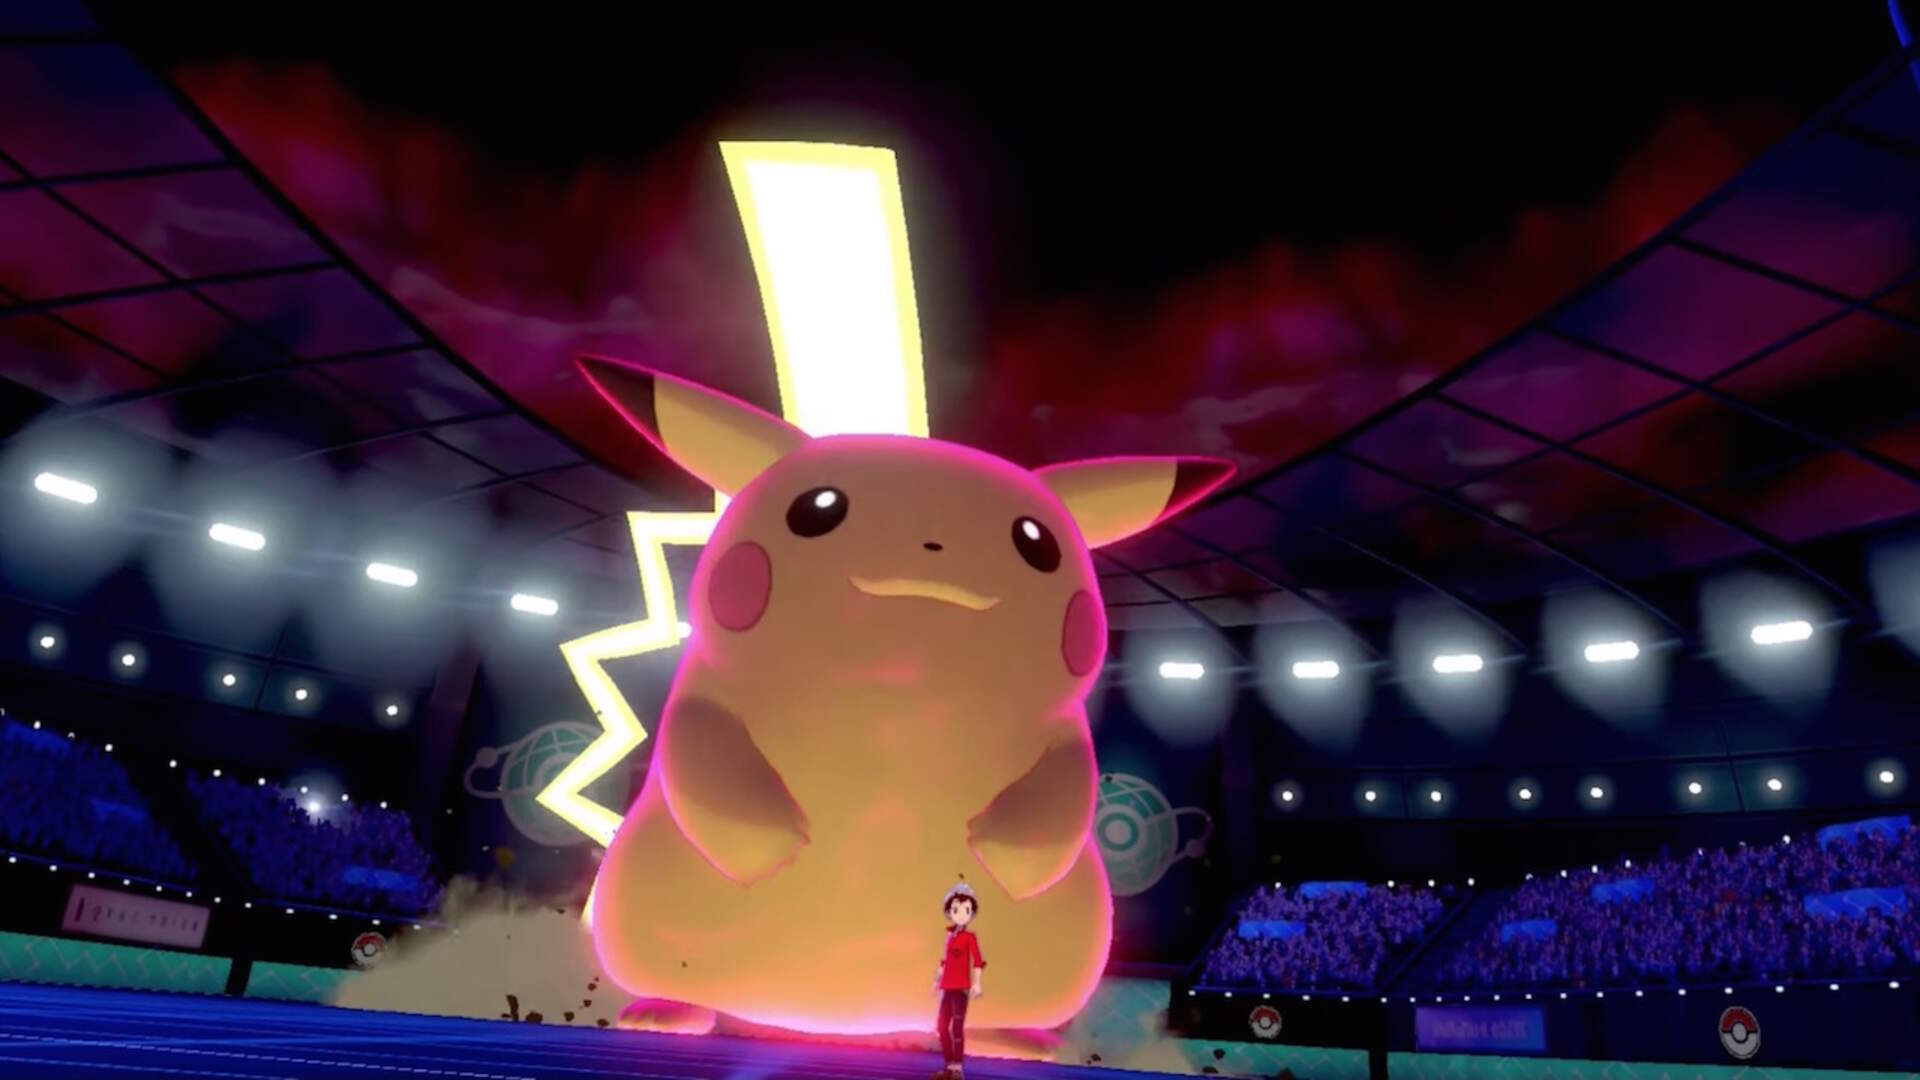 Fat Pikachu and Long Meowth Lead New Batch of Gigantamax Pokemon in Sword and Shield